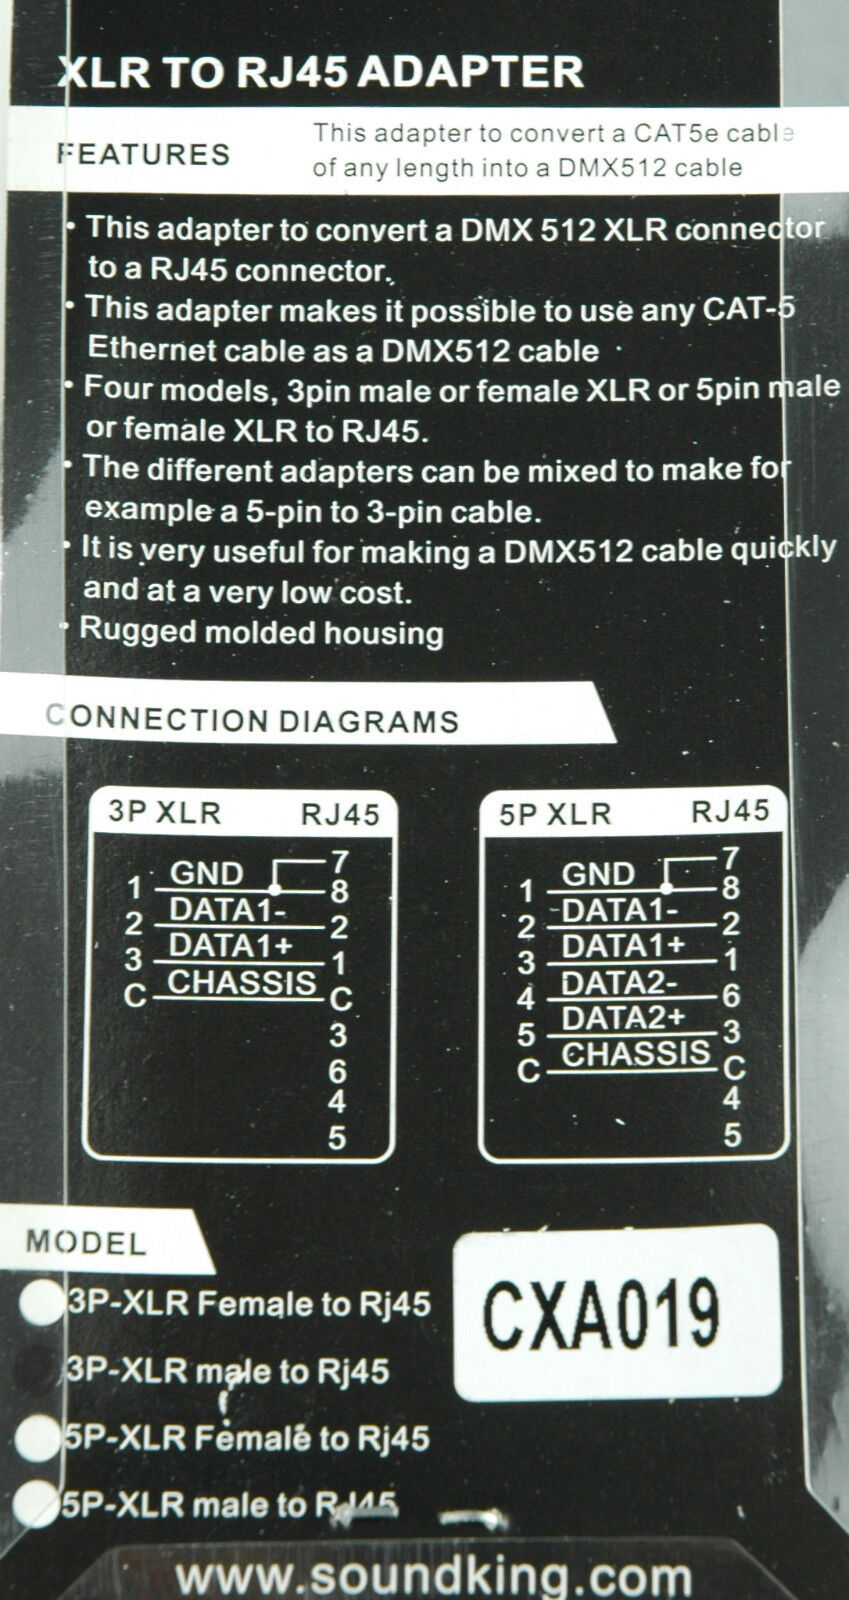 3 pin male XLR to RJ45 adaptor - converts CAT-5 Ethernet cable to ...